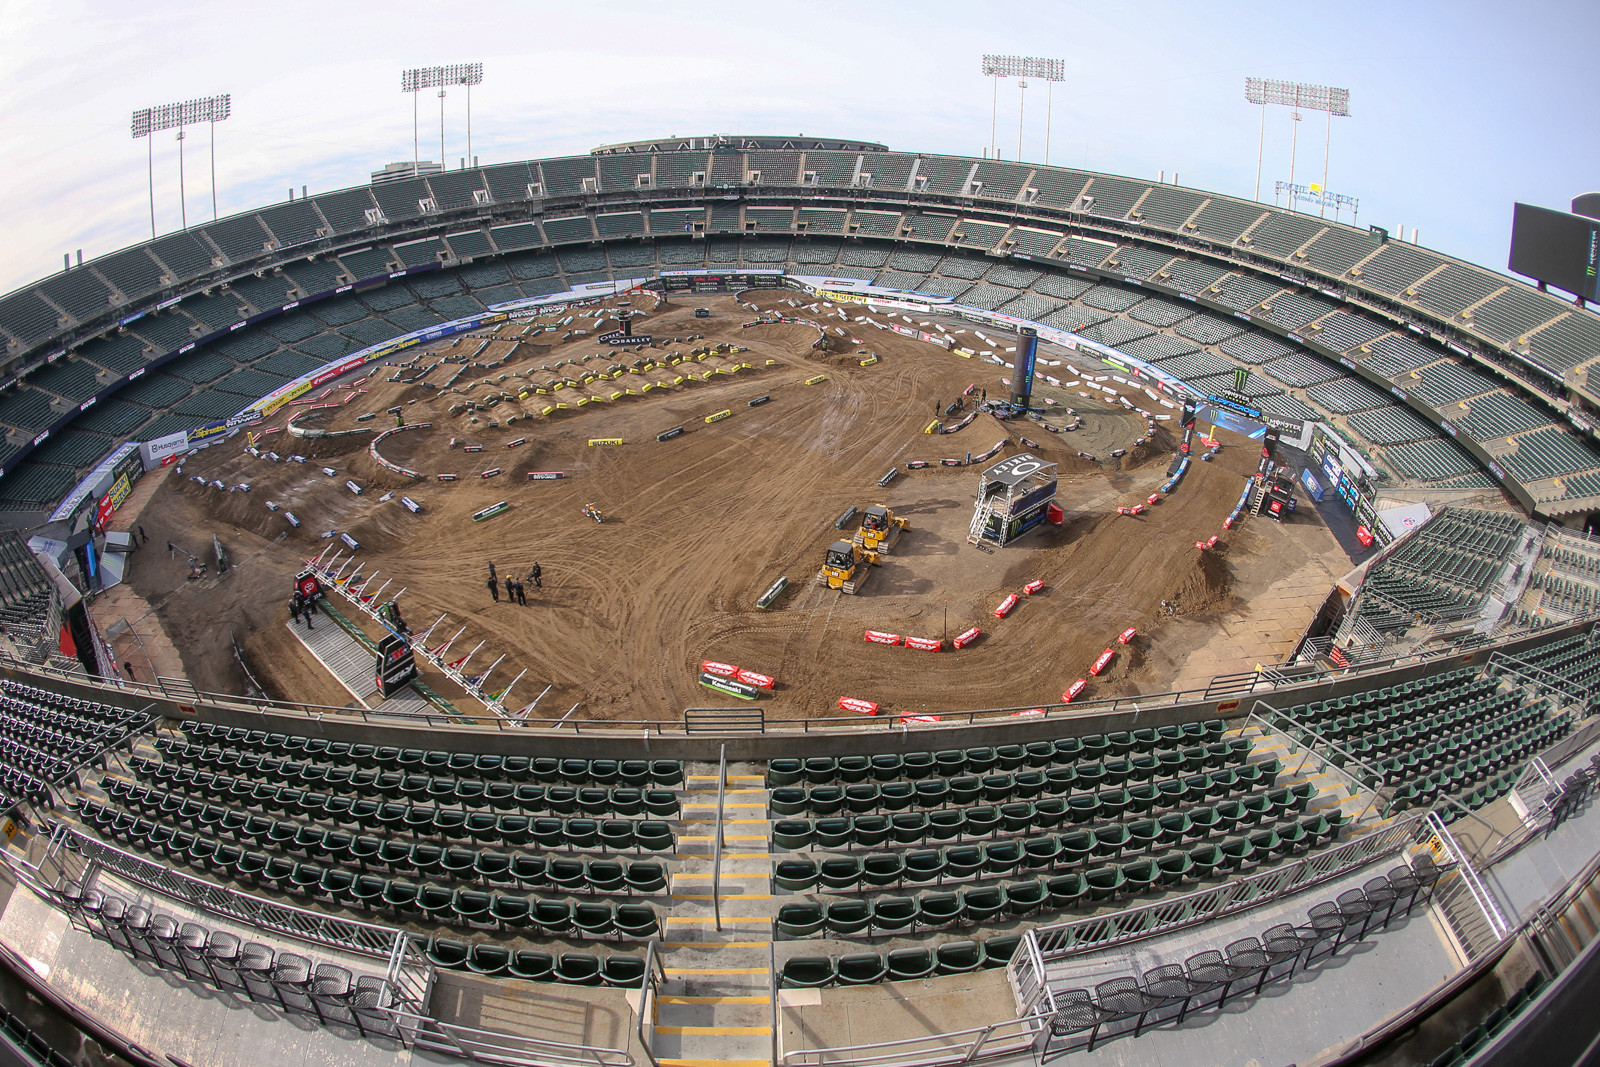 Welcome to Oakland. This one's a dual football/baseball stadium, so it's like a big bowl.